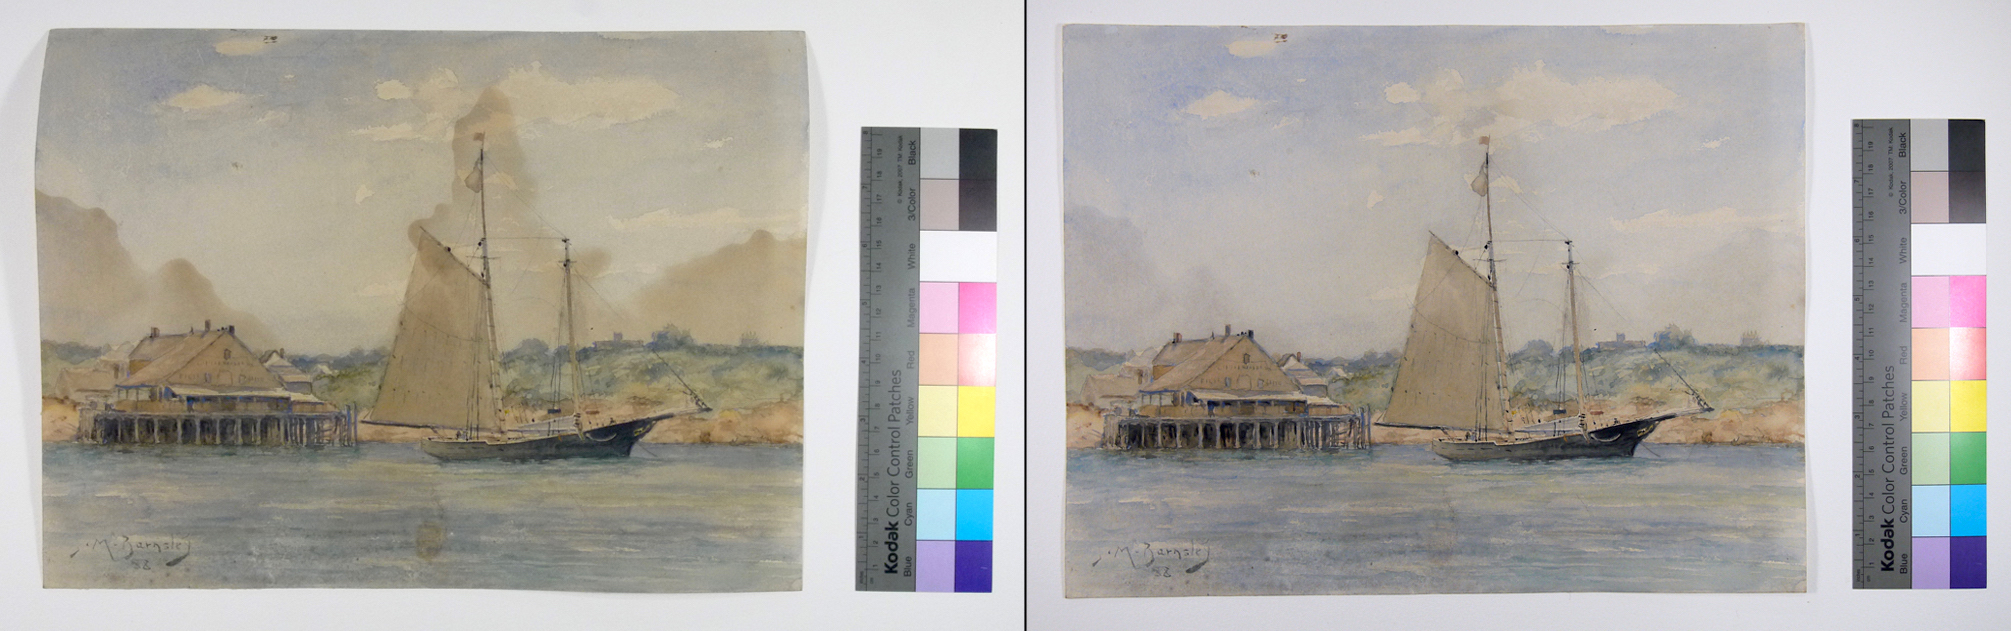 Watercolour painting before and after conservation treatment; brown stains have been removed with washing and bleaching.